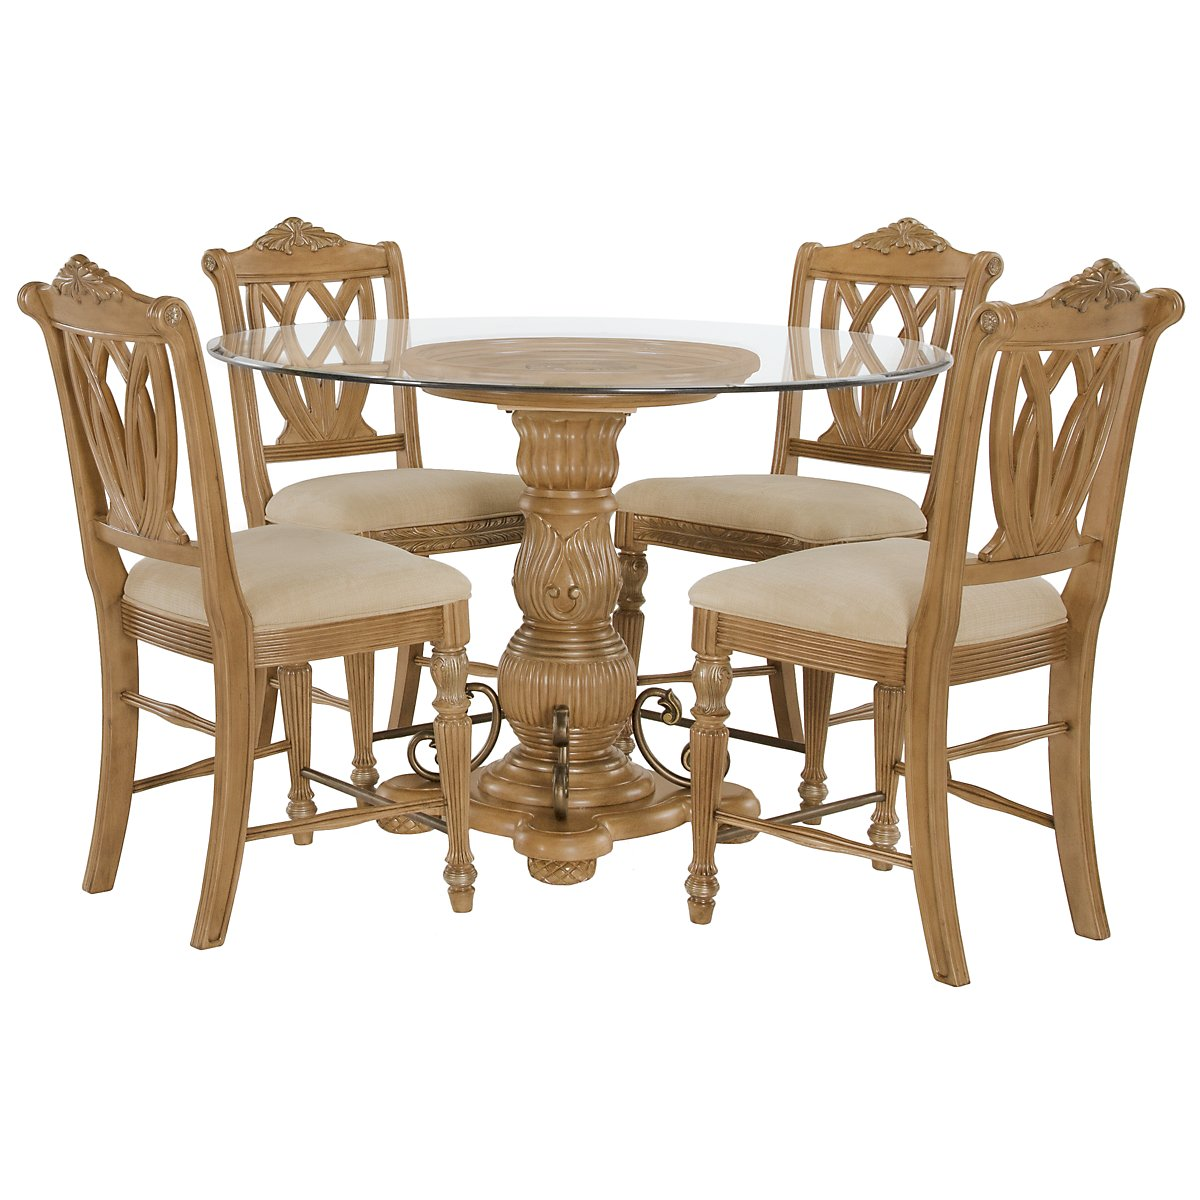 Tradewinds Light Tone Glass High Table & 4 Wood Barstools